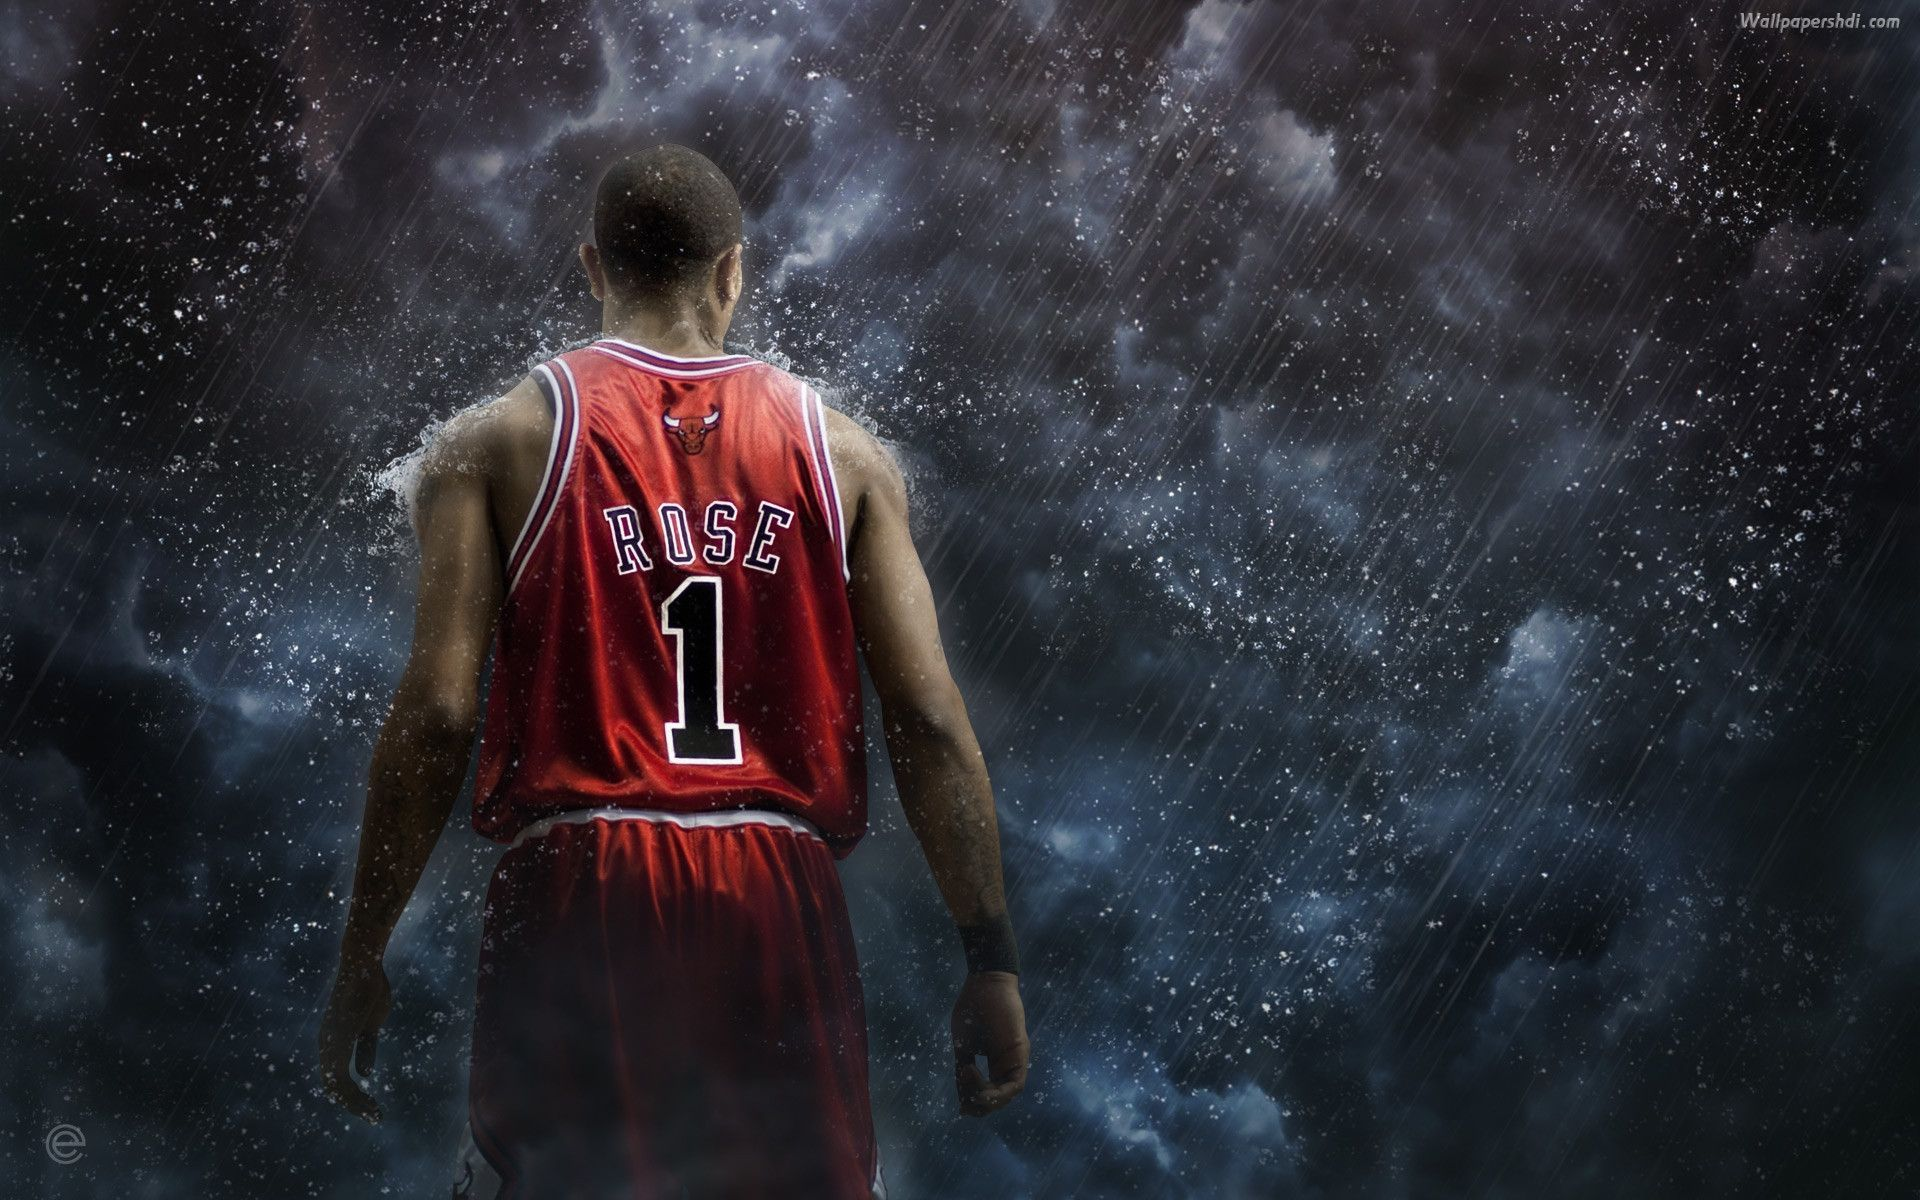 derrick rose hd wallpapers 3 | derrick rose hd wallpapers